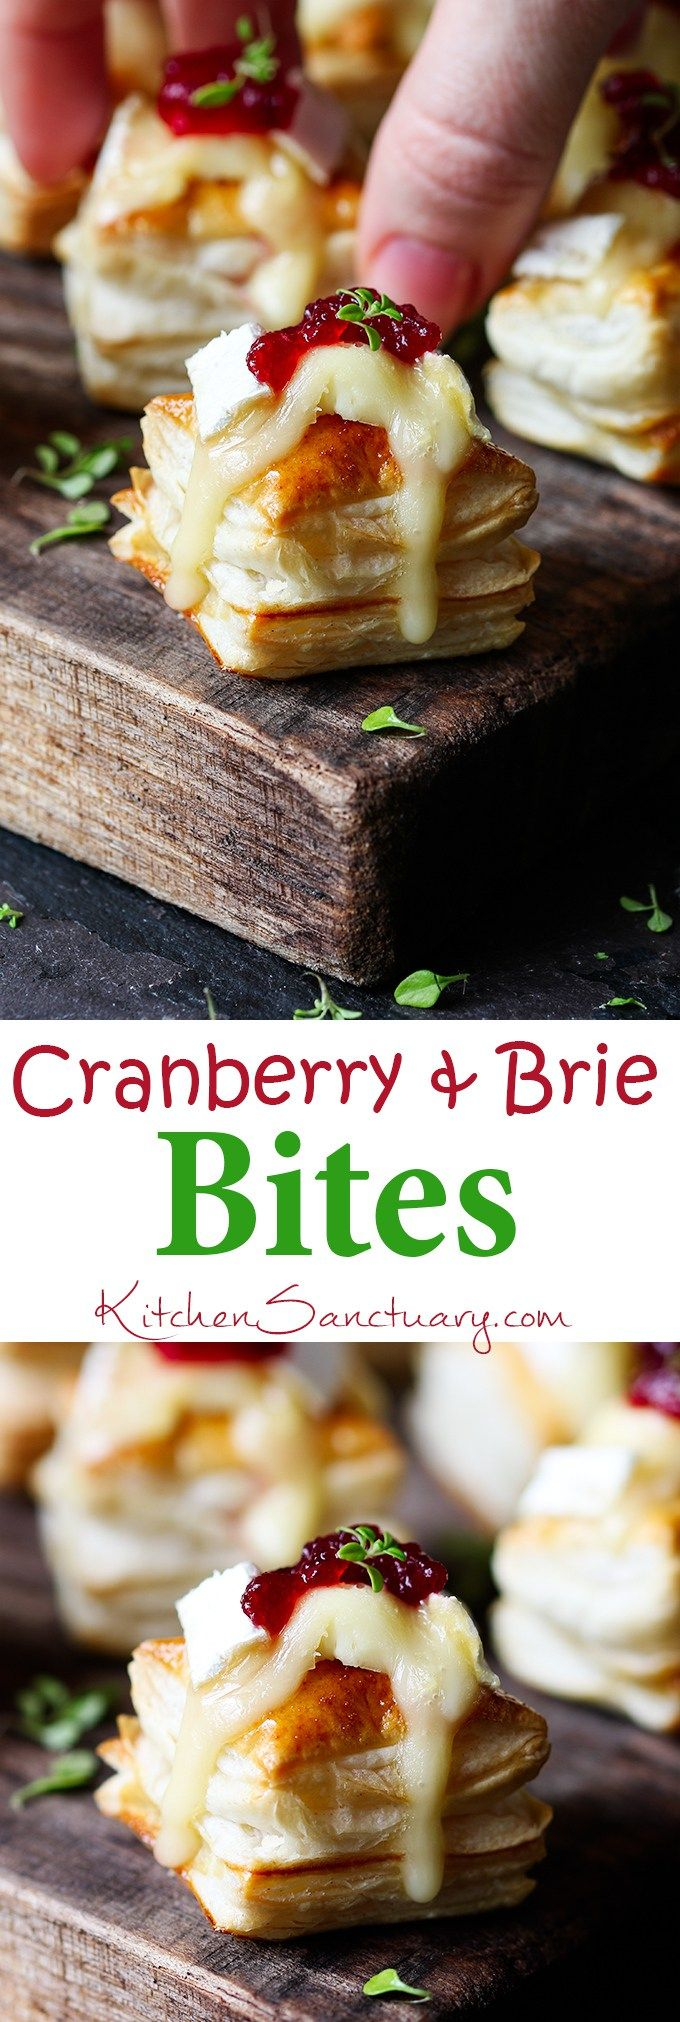 Cranberry & Brie Bites - A simple appetizer or party snack that always gets polished off in minutes!